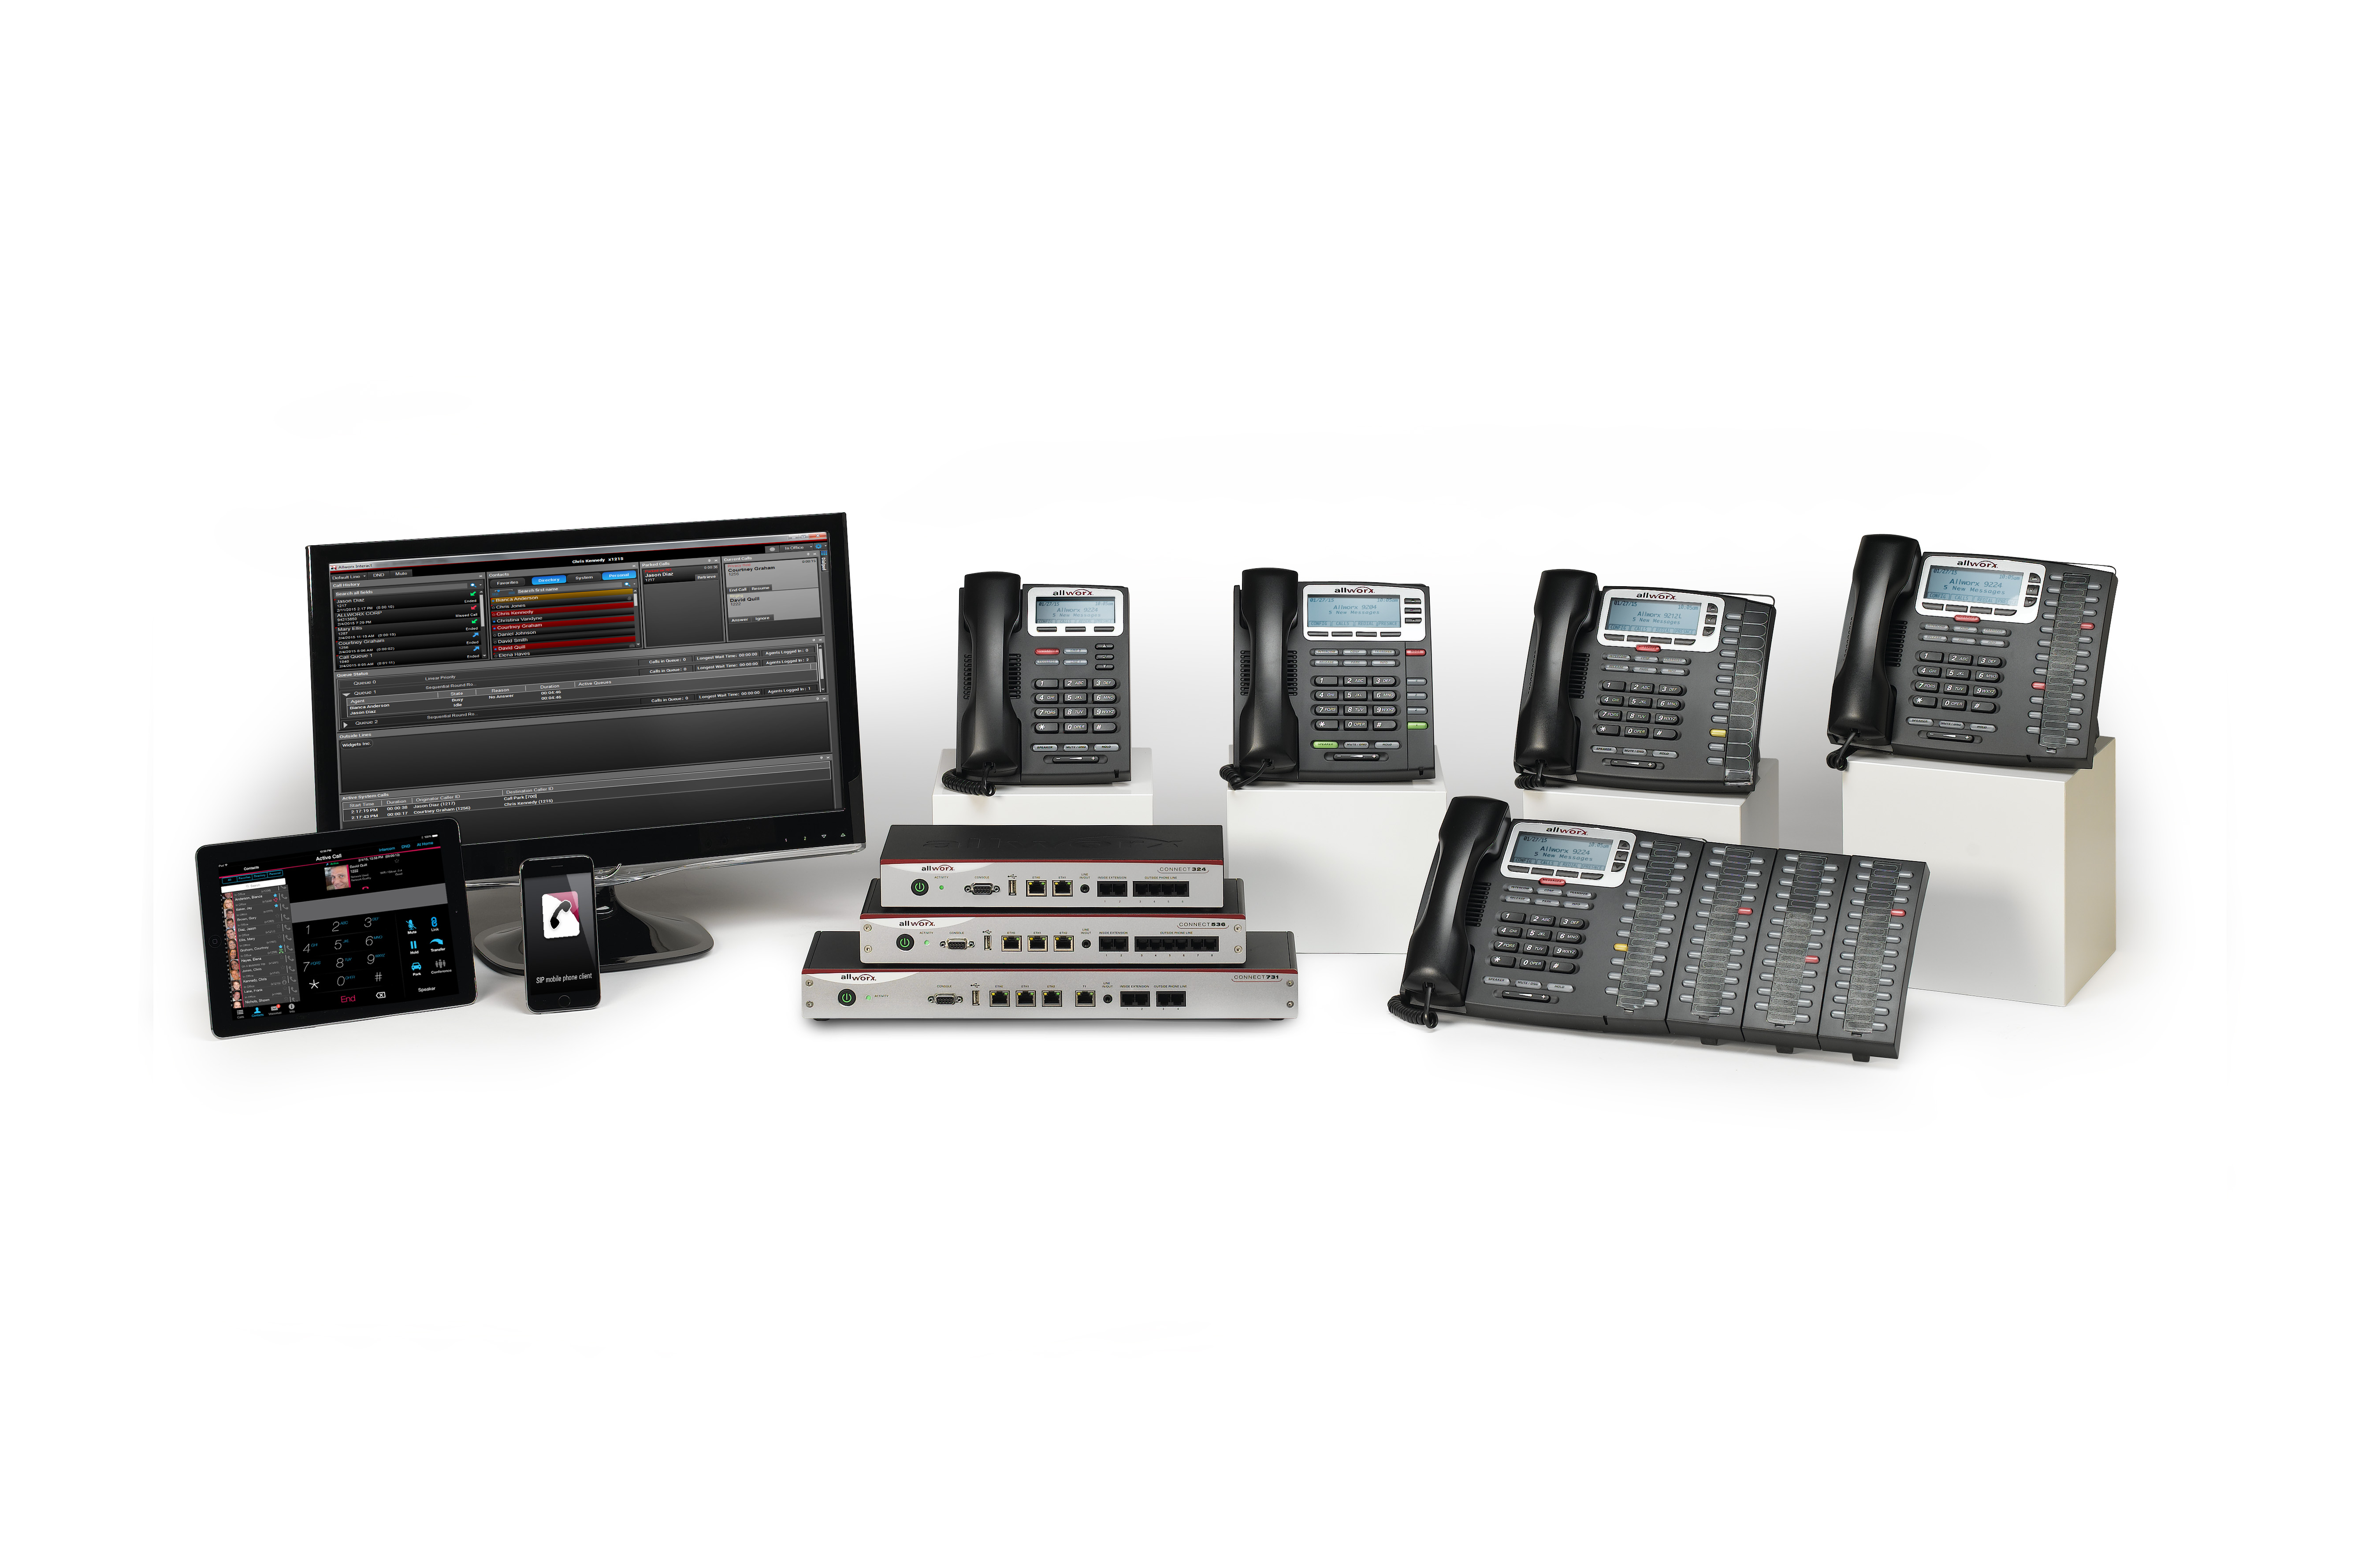 Allworx Business Phone System